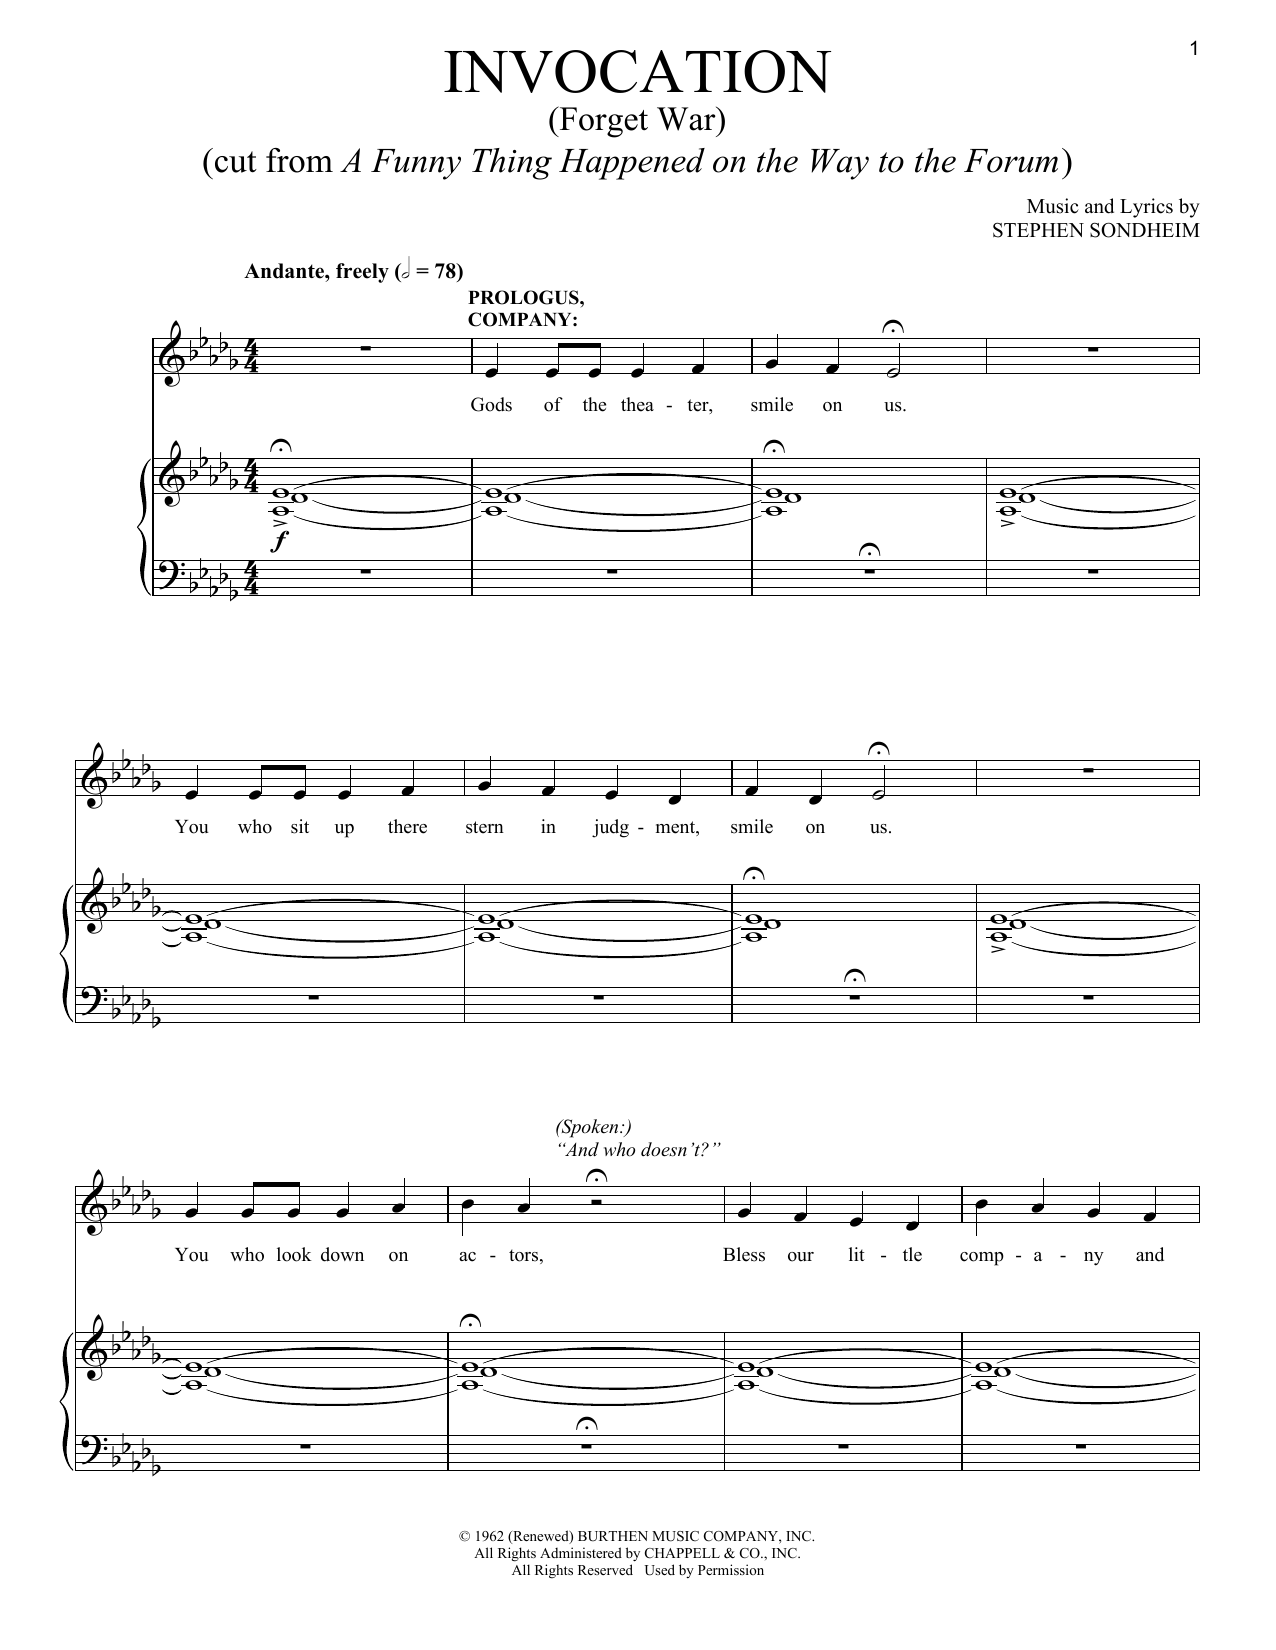 Stephen Sondheim Invocation (Forget War) sheet music notes and chords